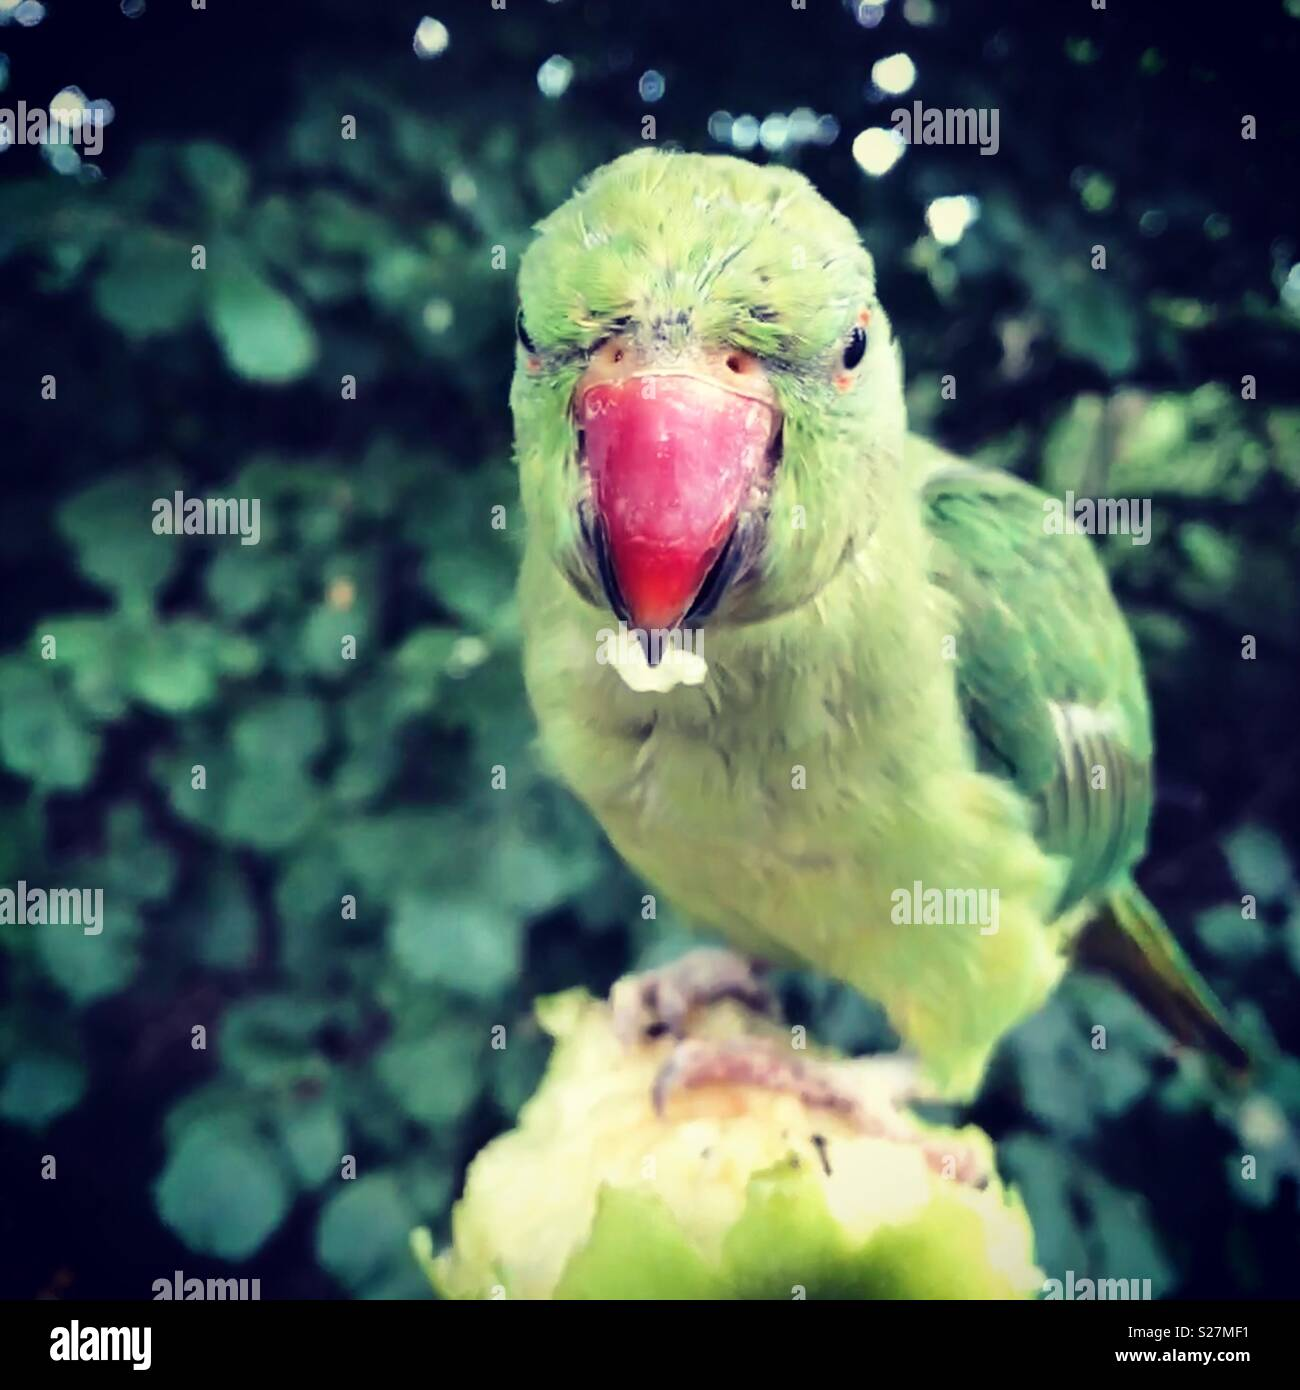 Flying and living free and wild in Hyde Park, flocks of parrots loving apples - Stock Image